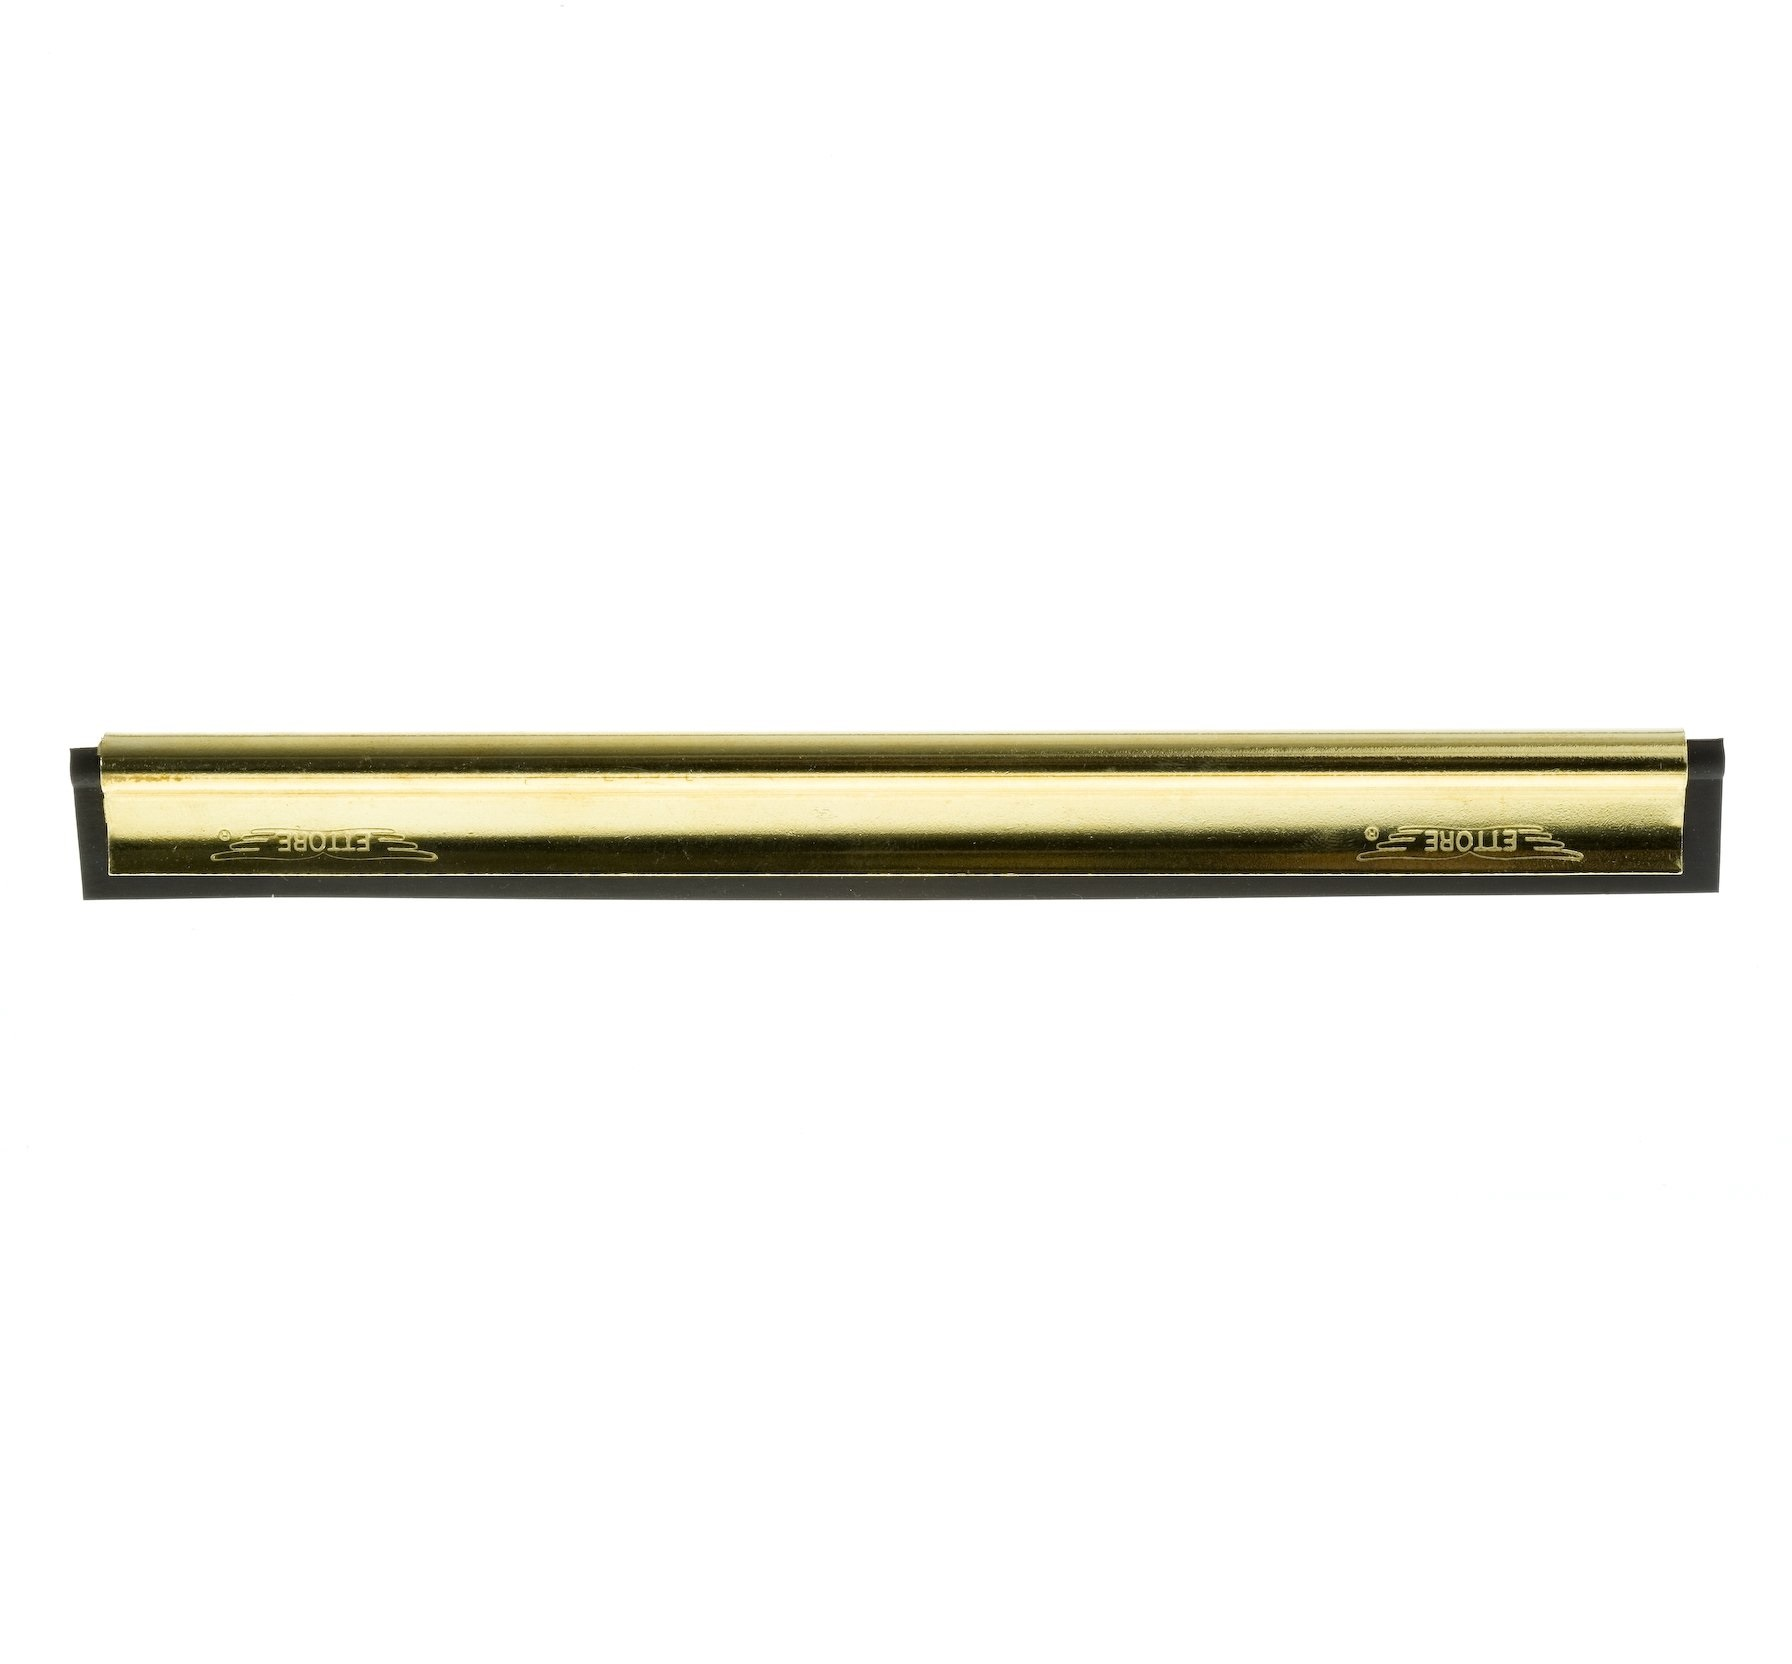 Ettore-Master-Brass-Channel---Rubber-14-inch